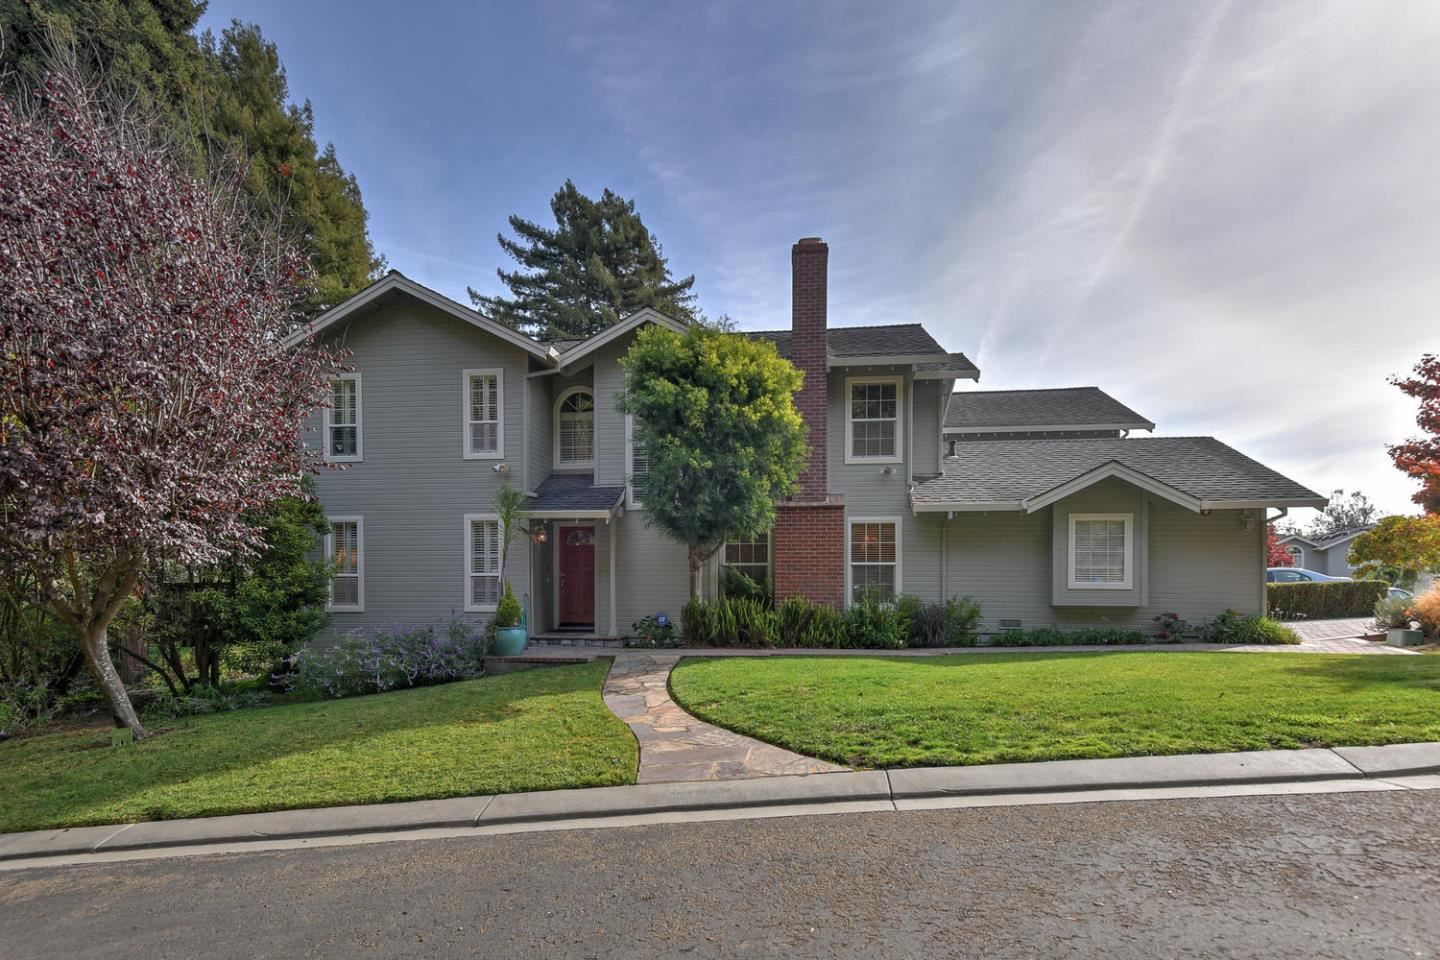 7866 Tanias CT, Aptos, CA 95003 - #: ML81775611